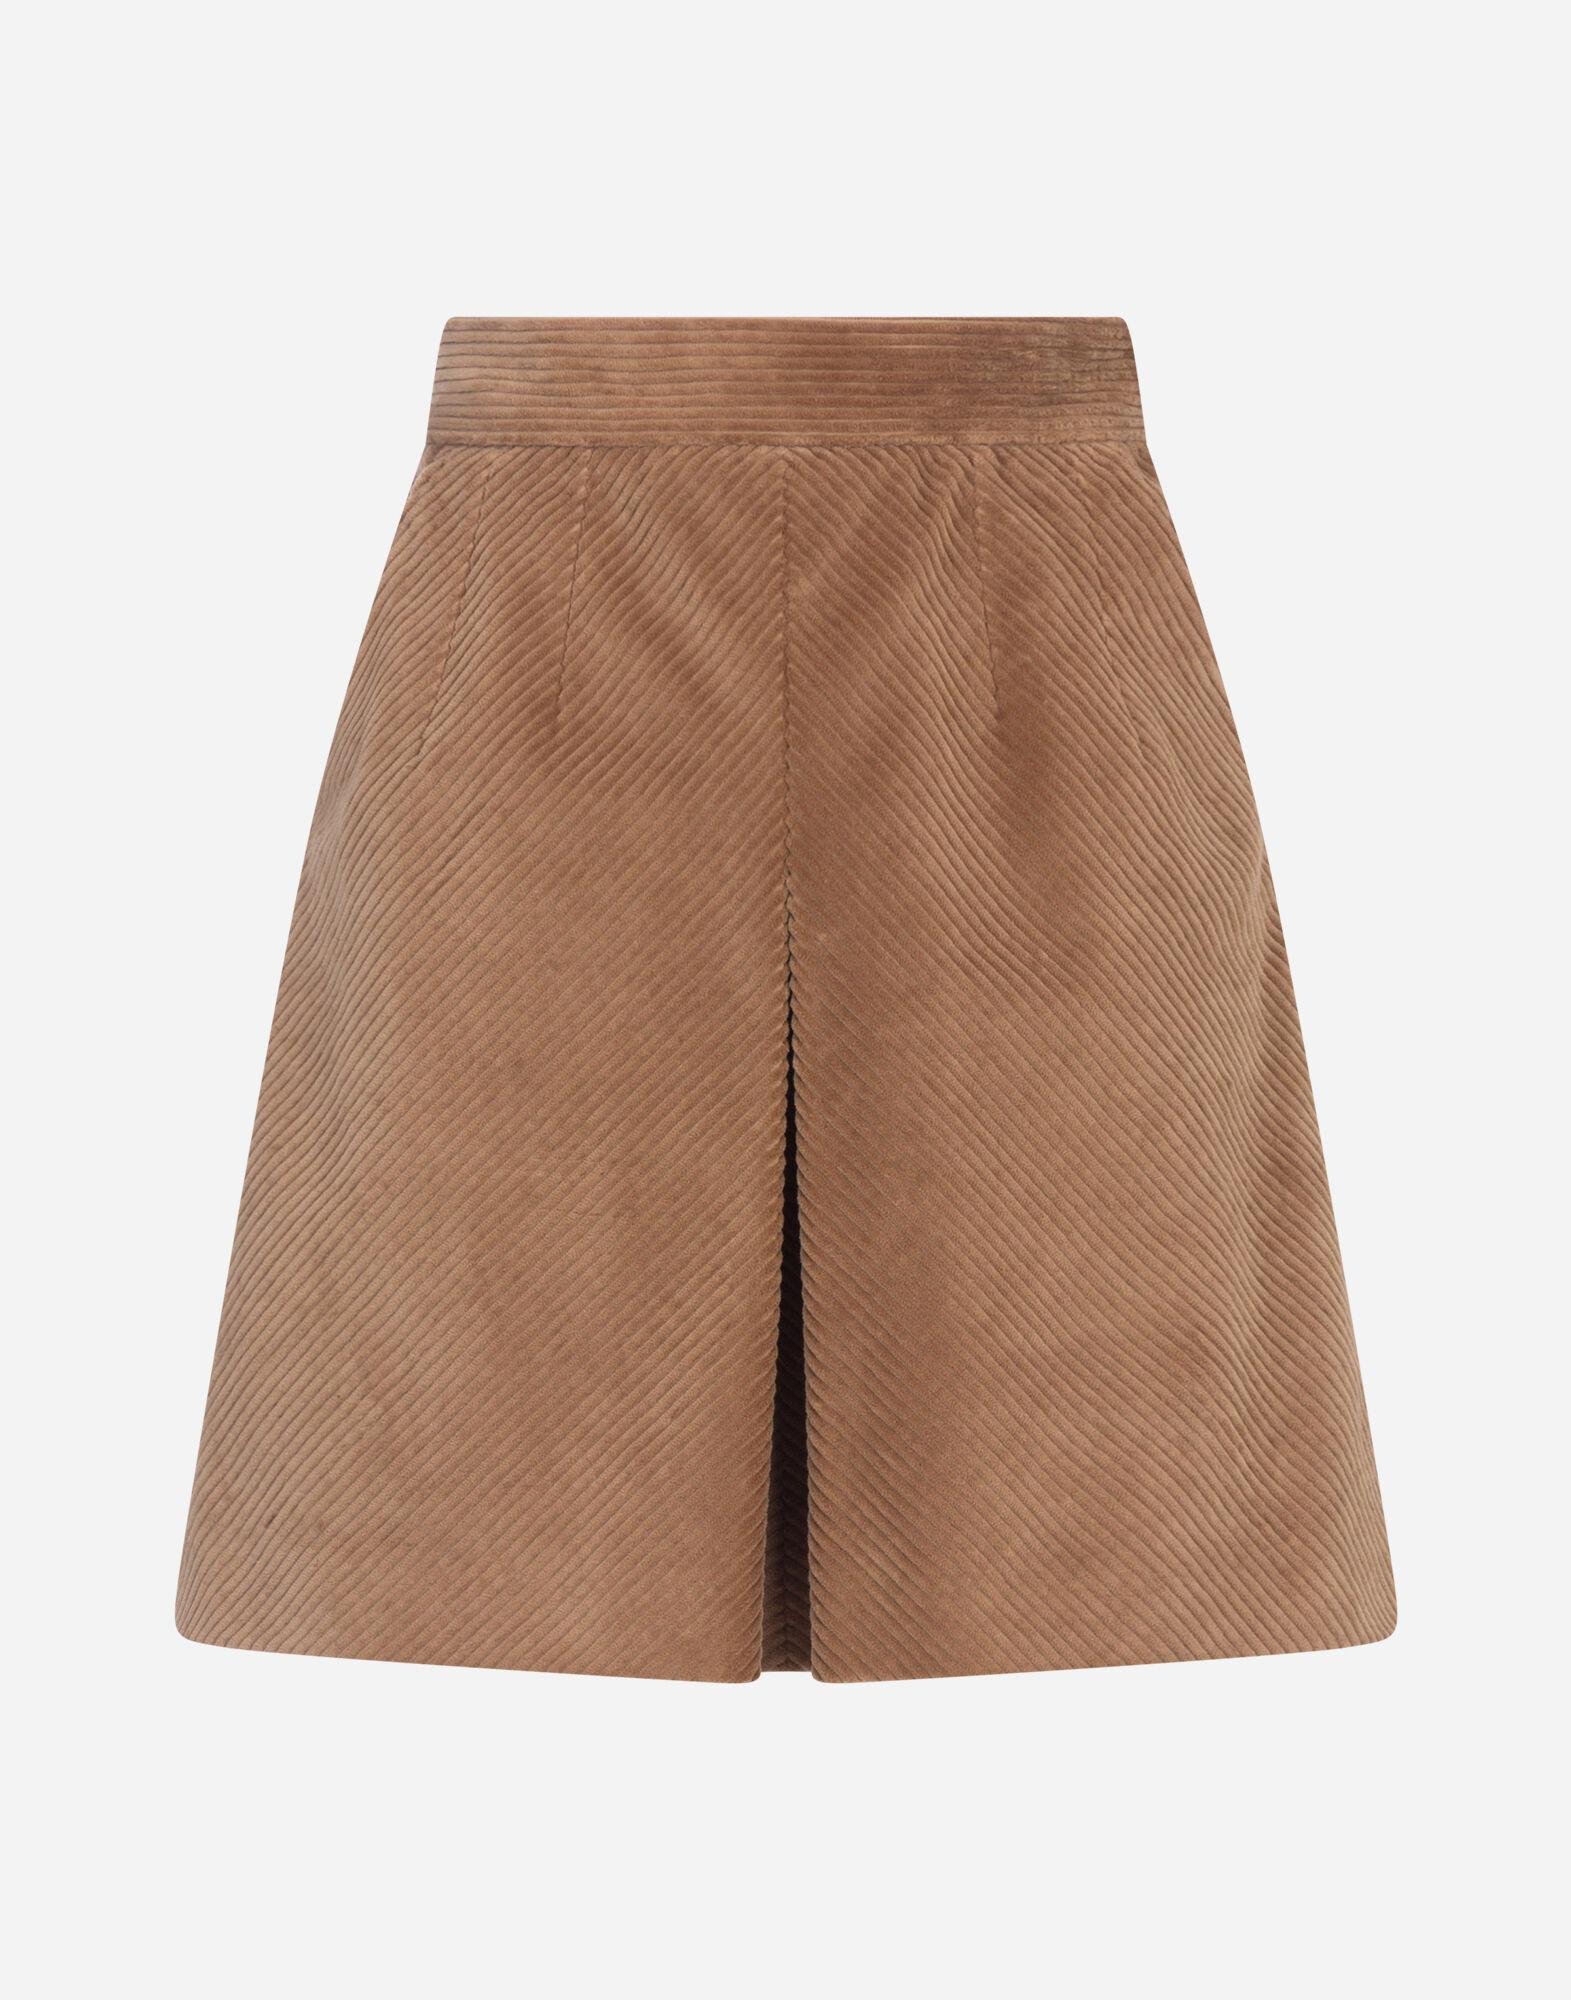 Short skirt in corduroy with kick pleat 3